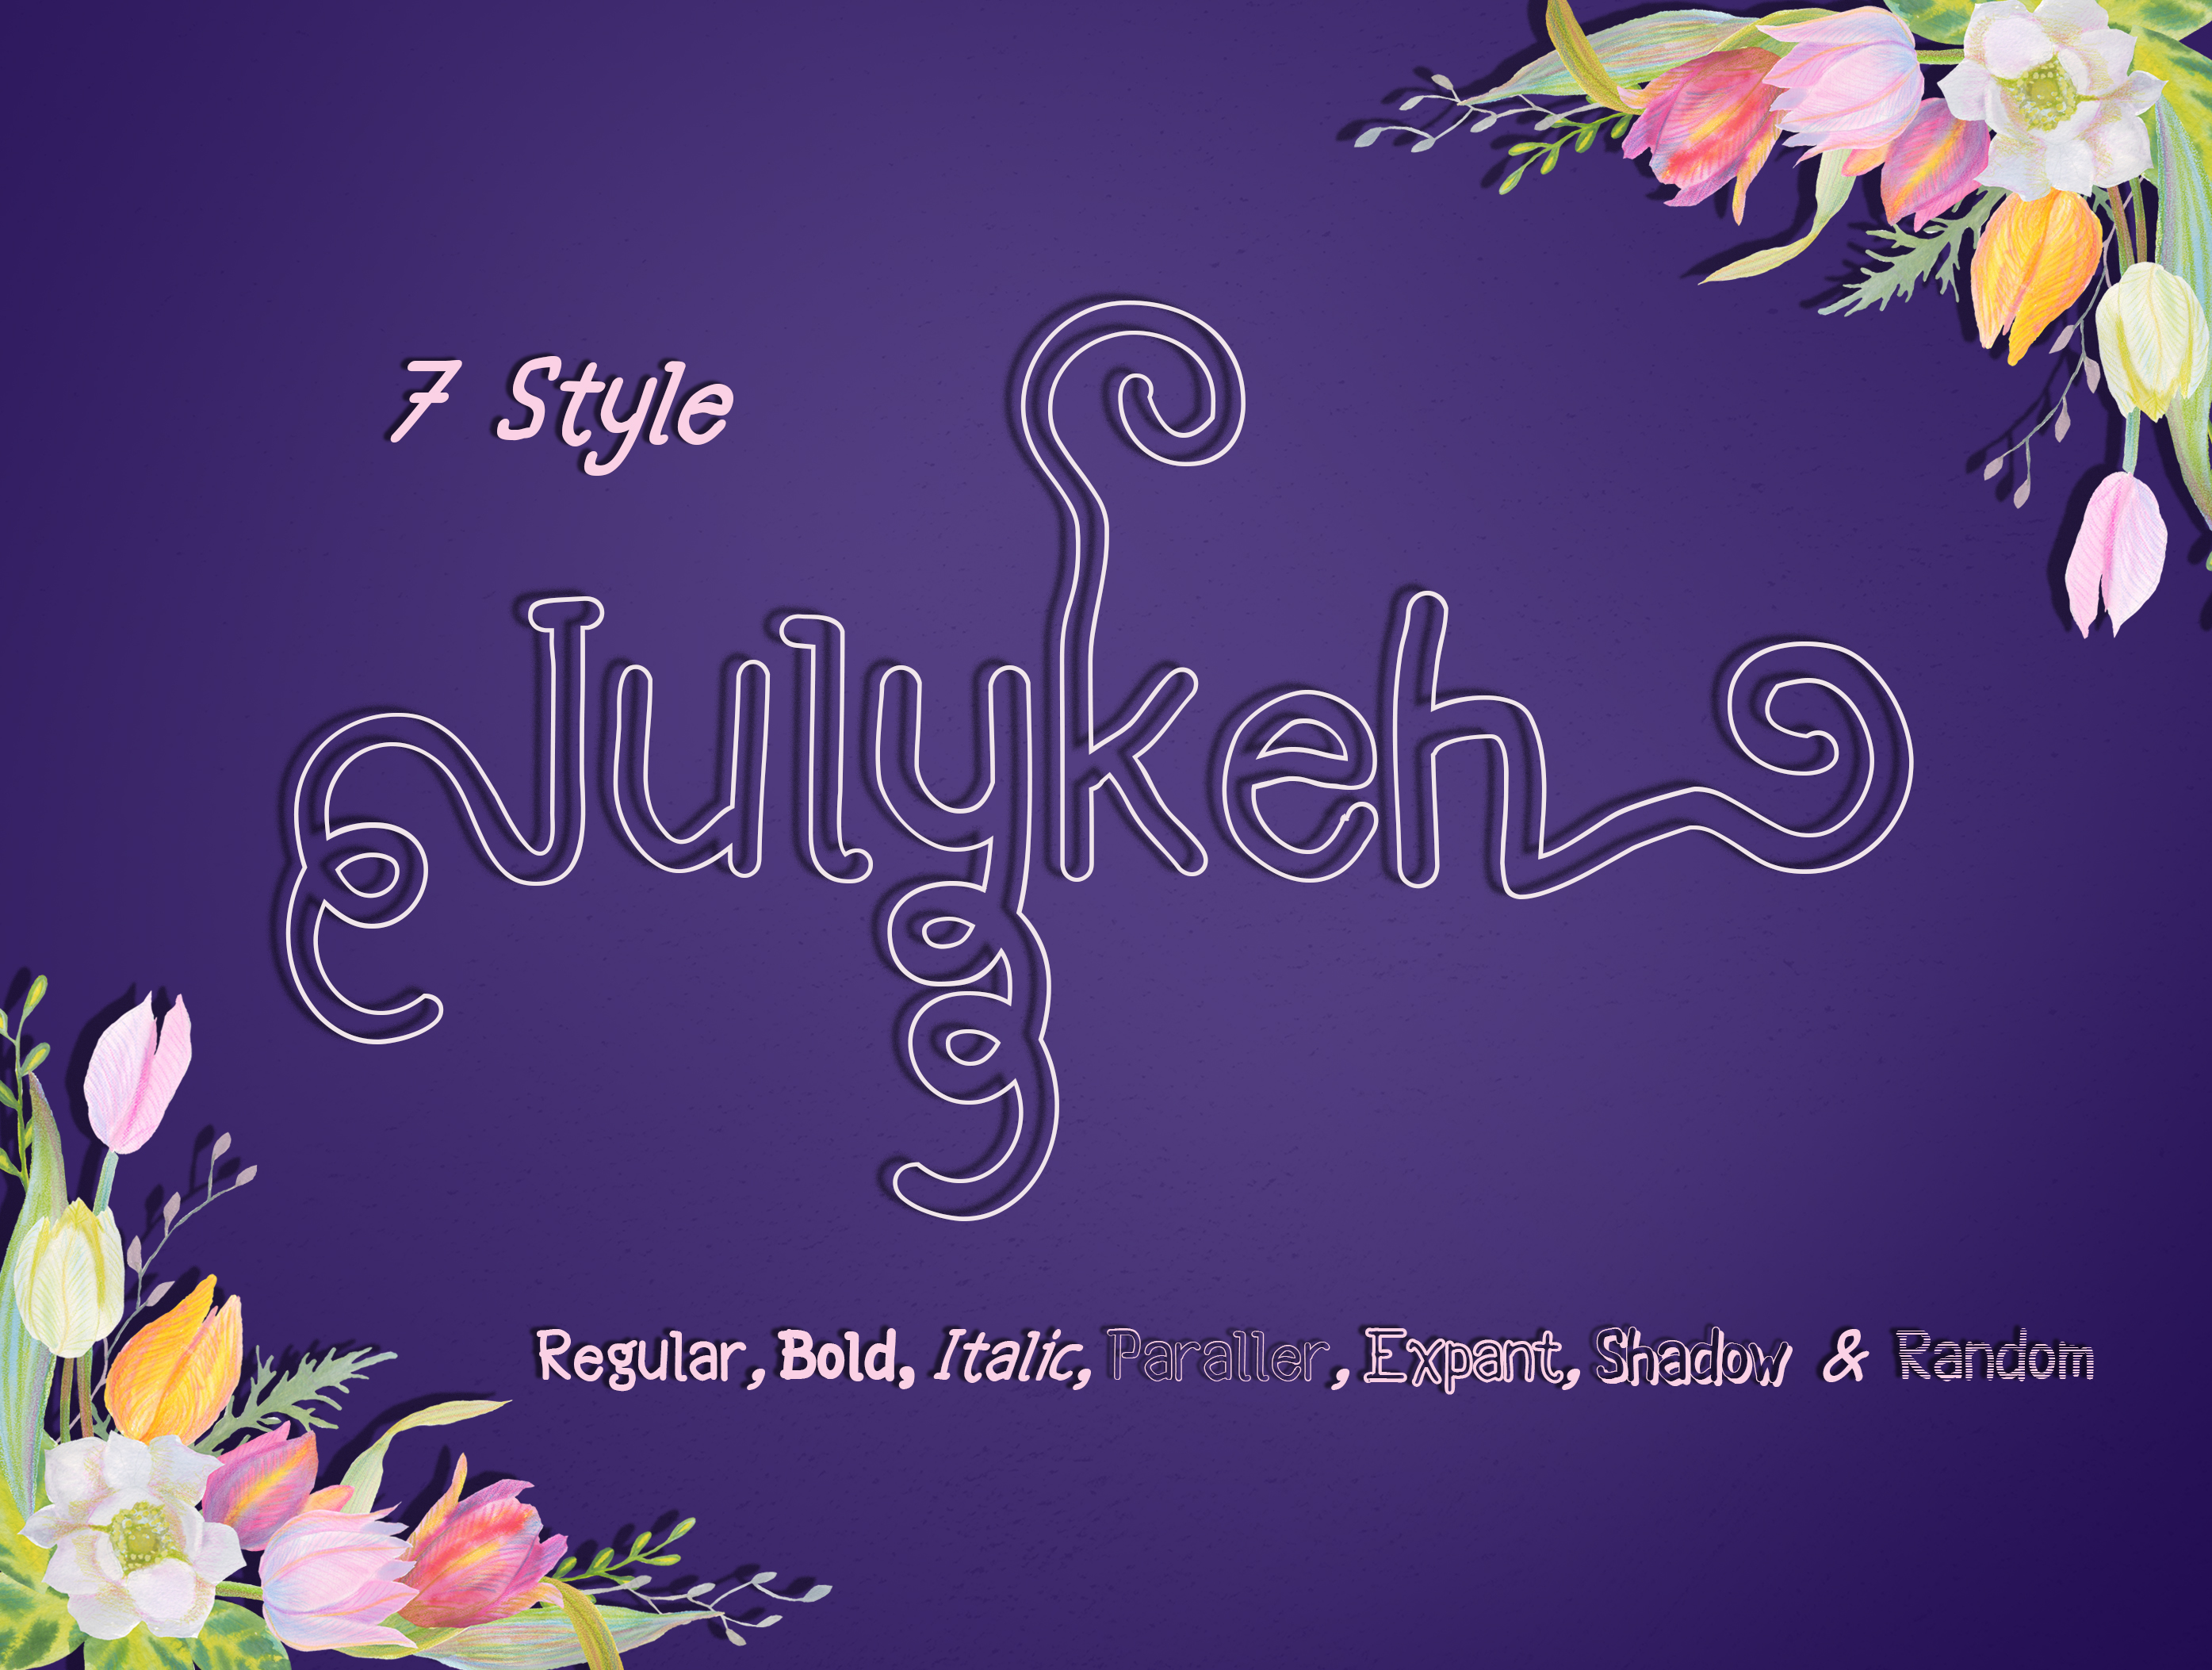 Julykeh handmade 7 Style Font example image 3